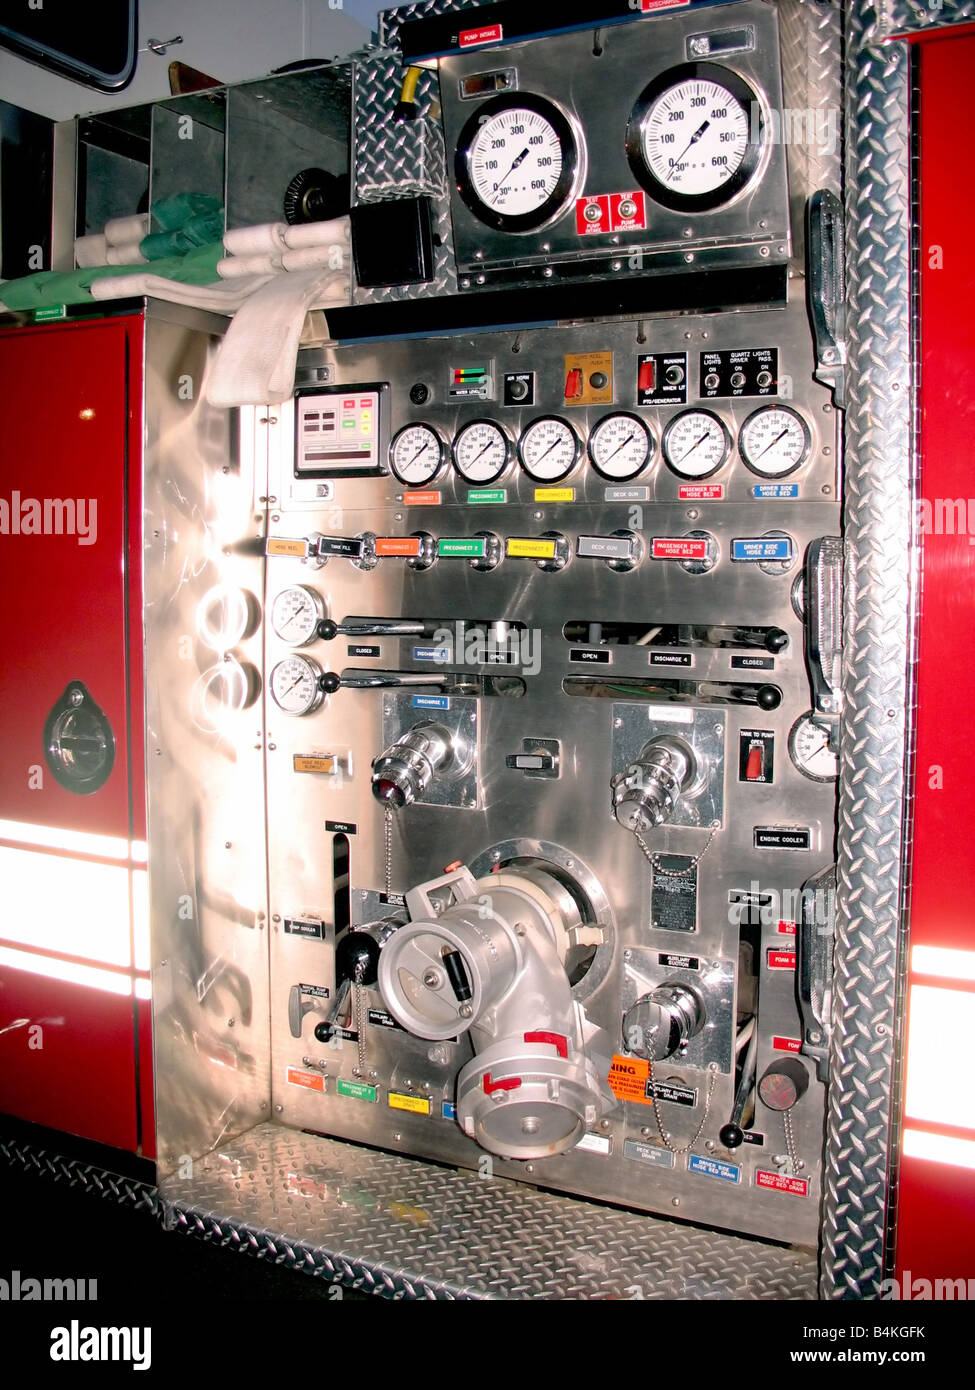 Modern Fire Engine Stock Photos Images Backing Diagram The Side Control Panel Of A Image